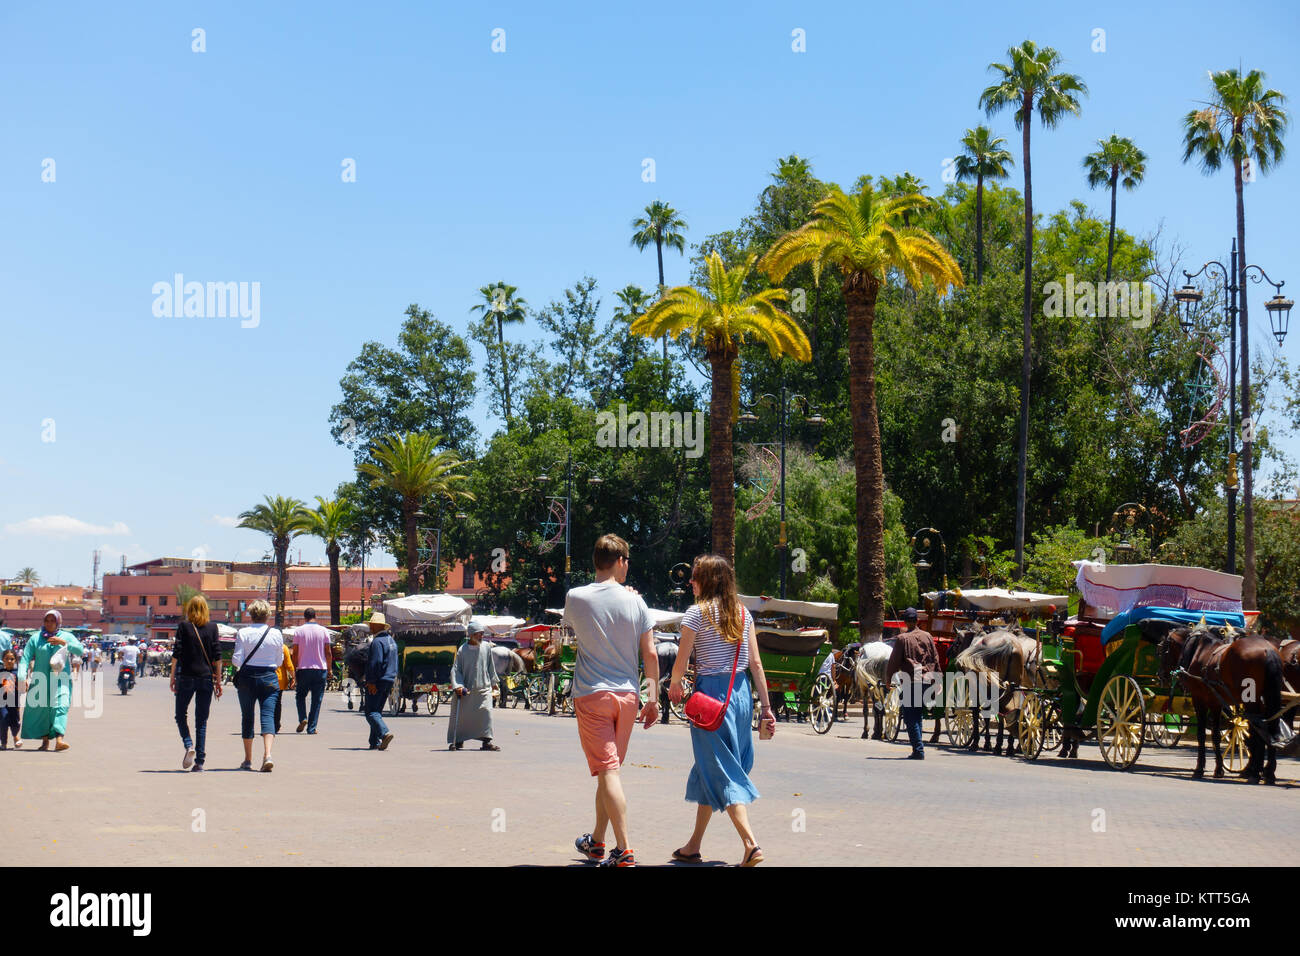 Marrakech, Morocco - May 12, 2017: Tourists and locals are walking on the street leading towards the famous Jemaa Stock Photo